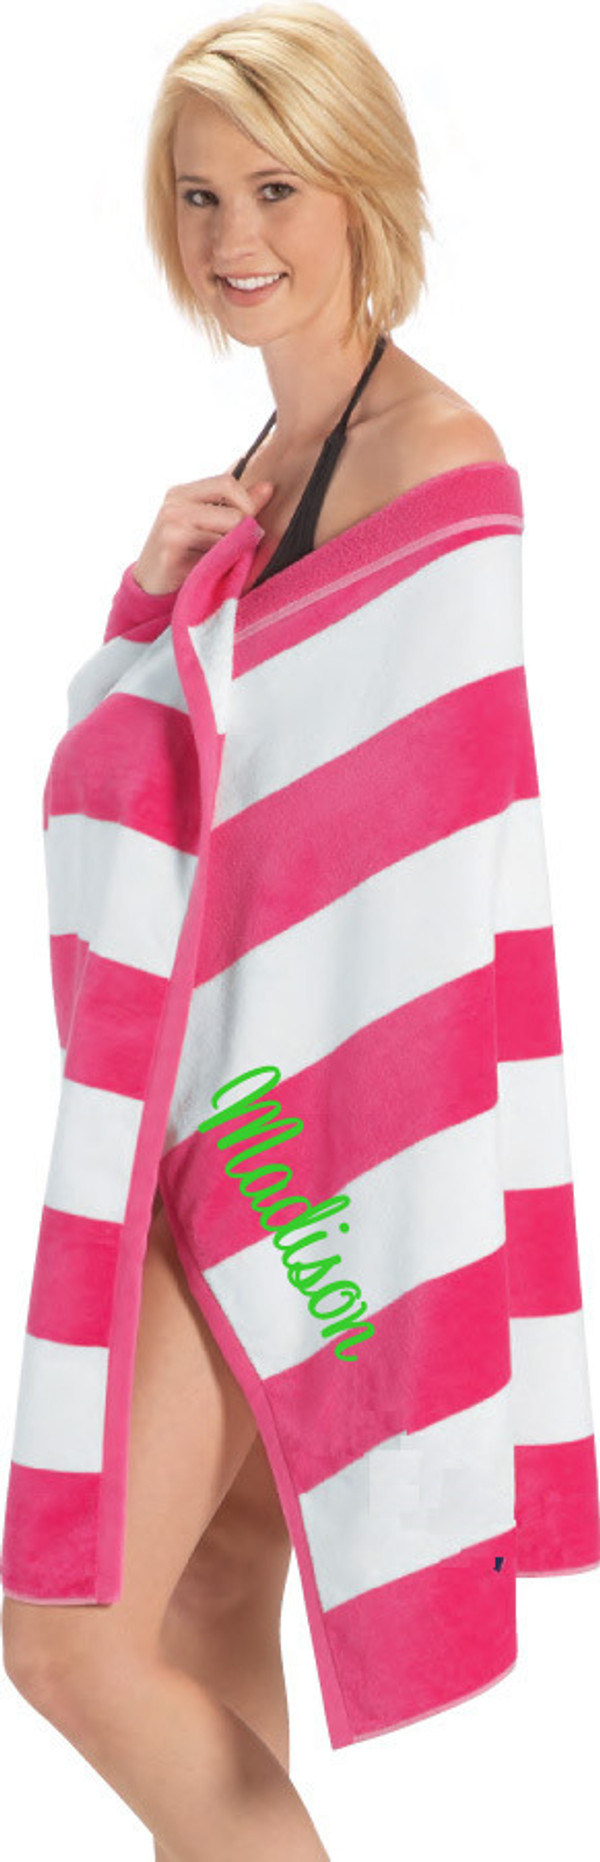 Monogrammed Cabana Stripe Terry Velour Towel Hot Pink Towel with Cursive Lime Green Font